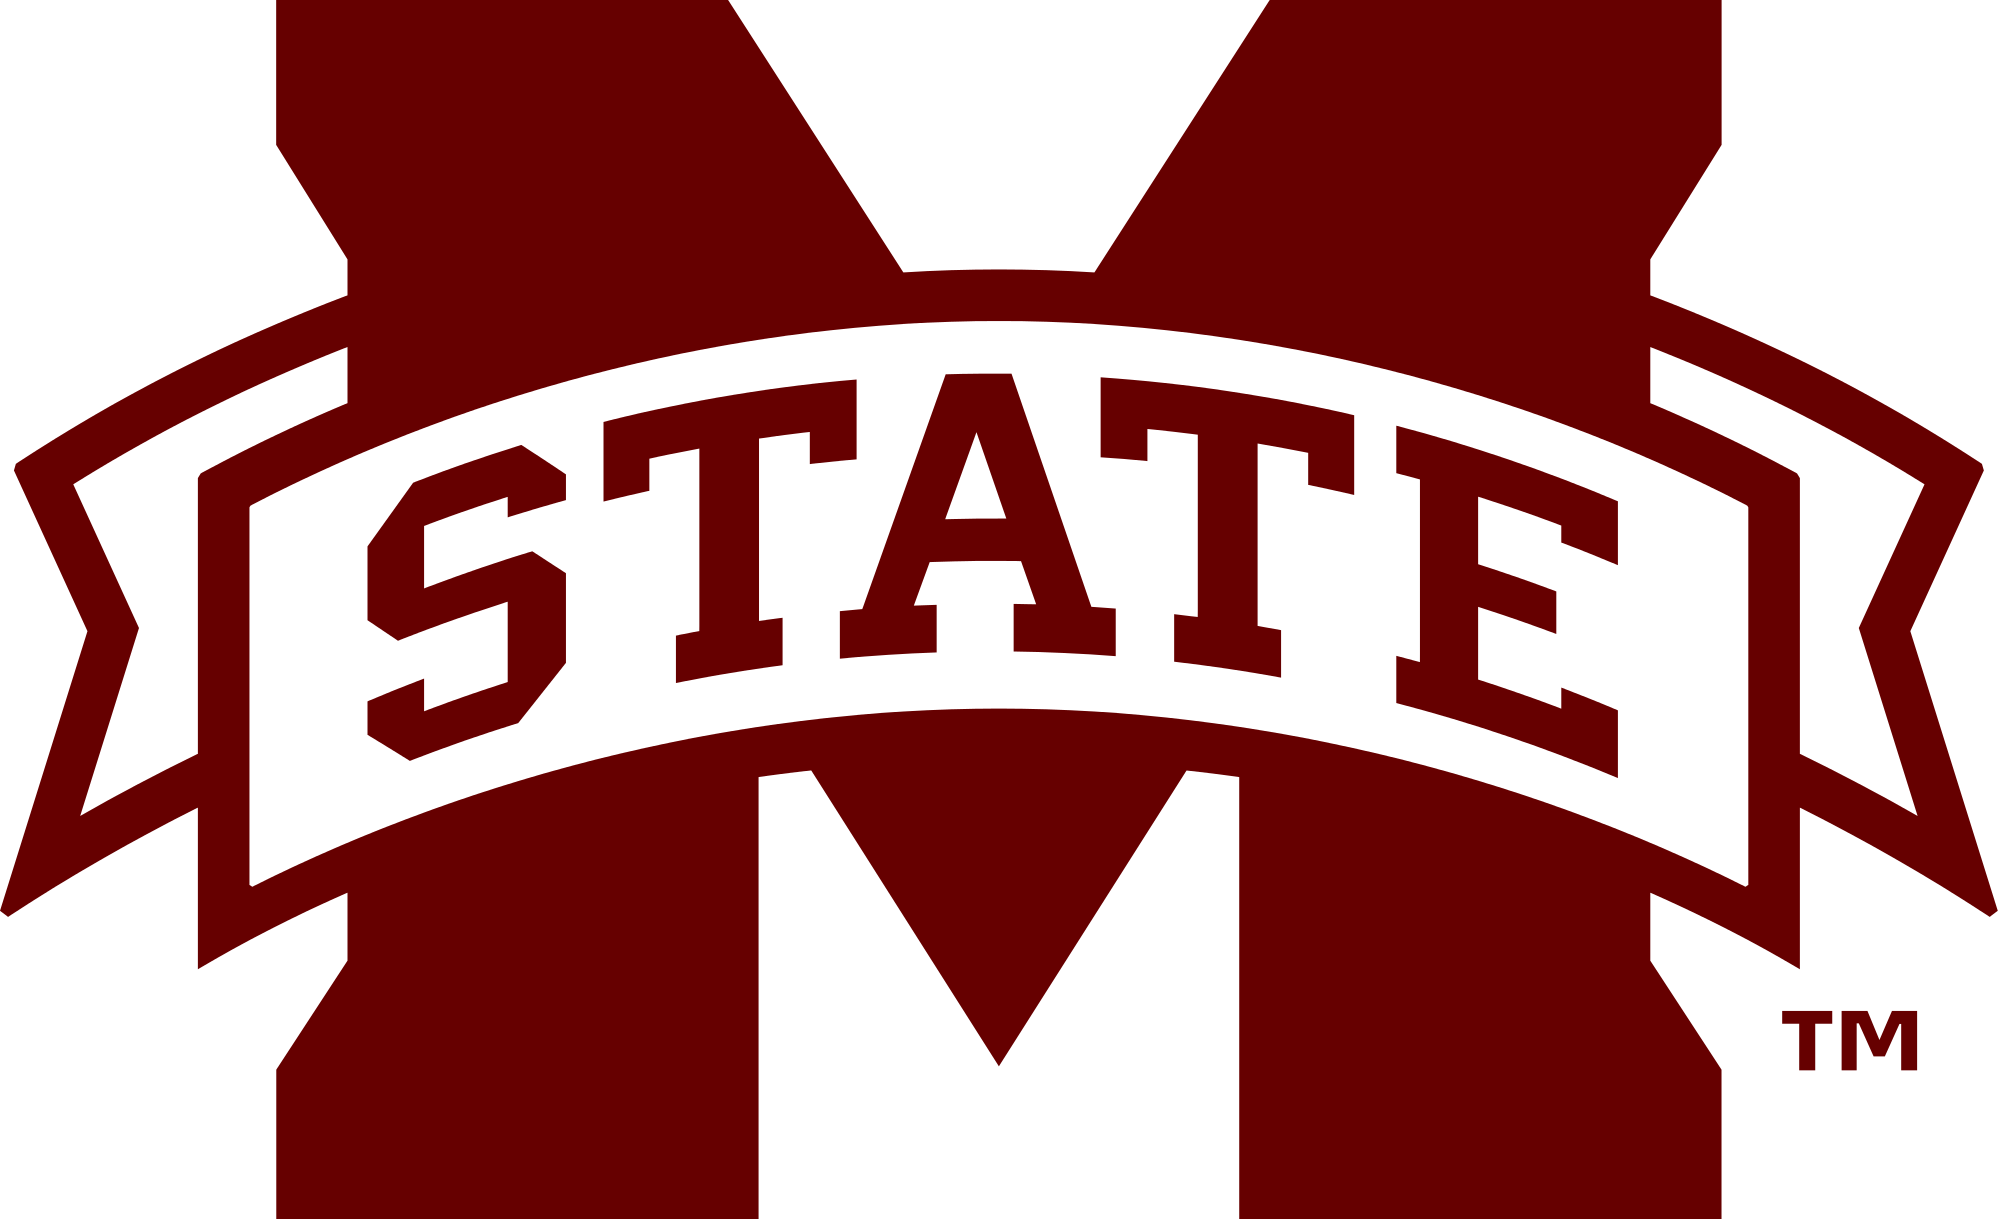 Msu football clipart clipart royalty free stock Ole Miss-MSU Opener Washed Out - WCBI TV | Your News Leader clipart royalty free stock